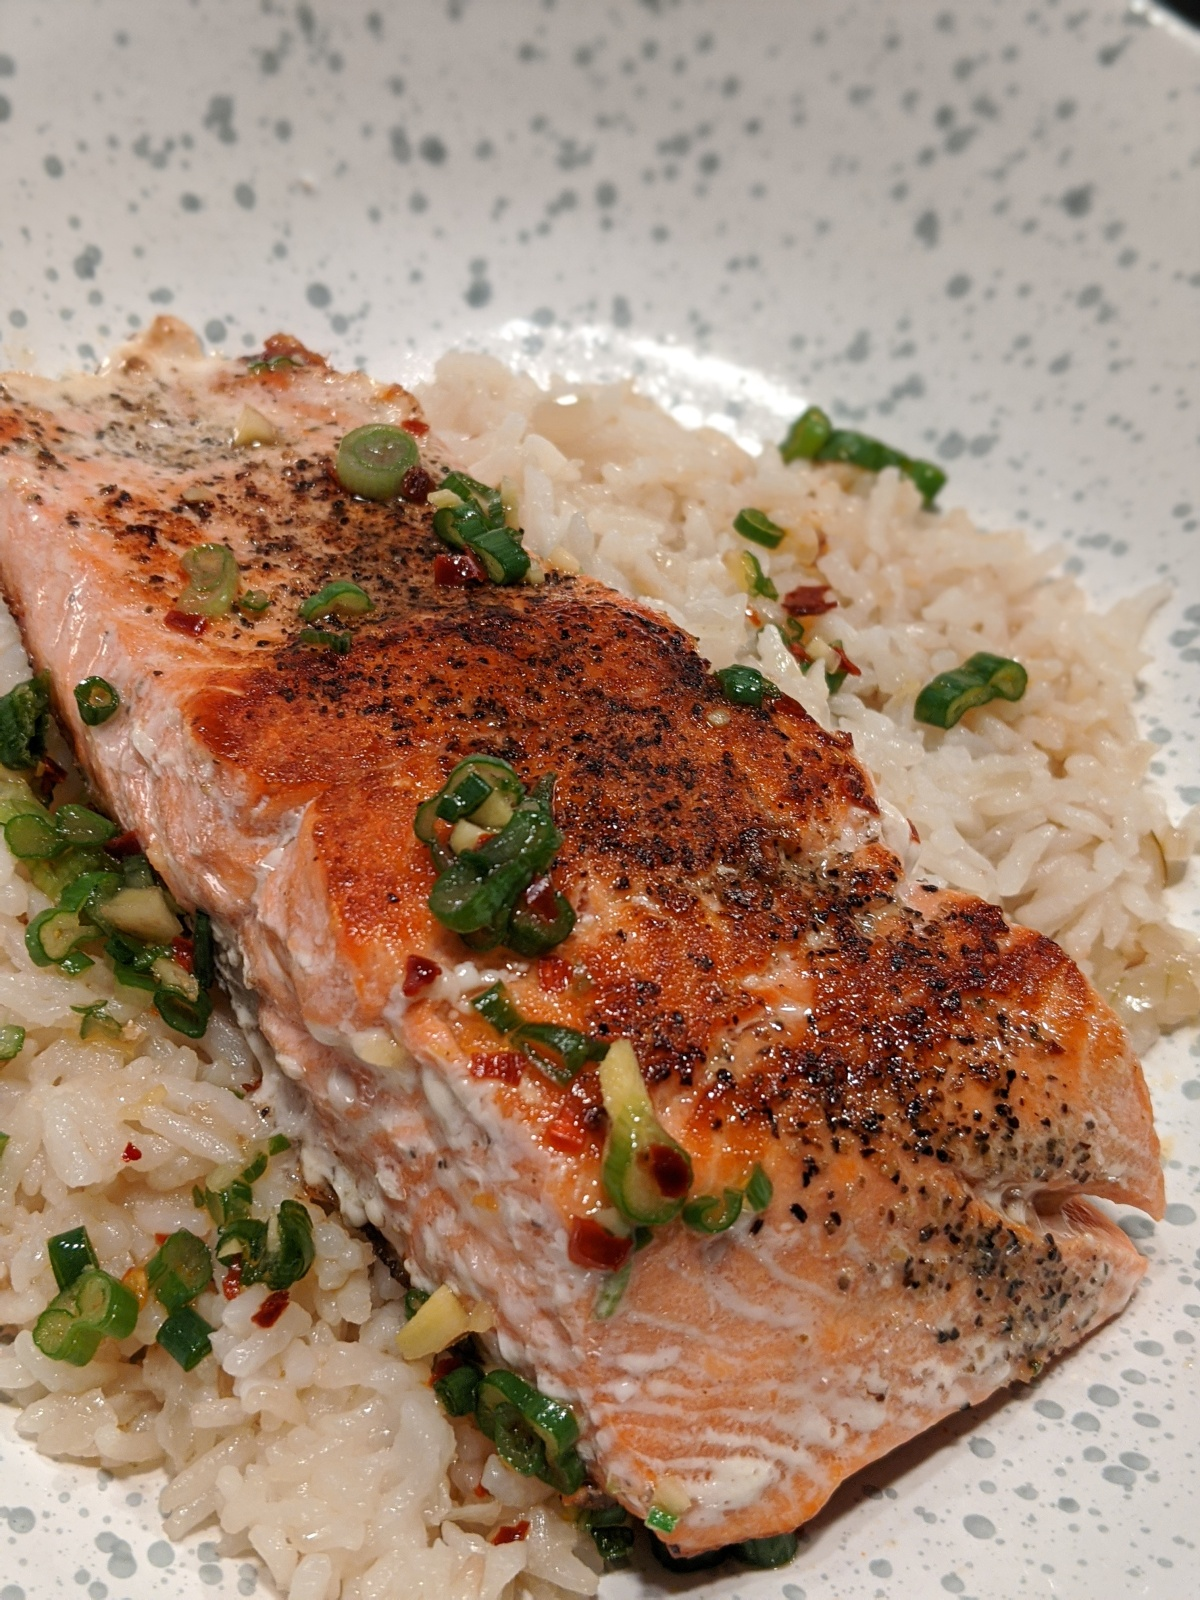 Cherryblossom Salmon with Coconut Ginger Rice